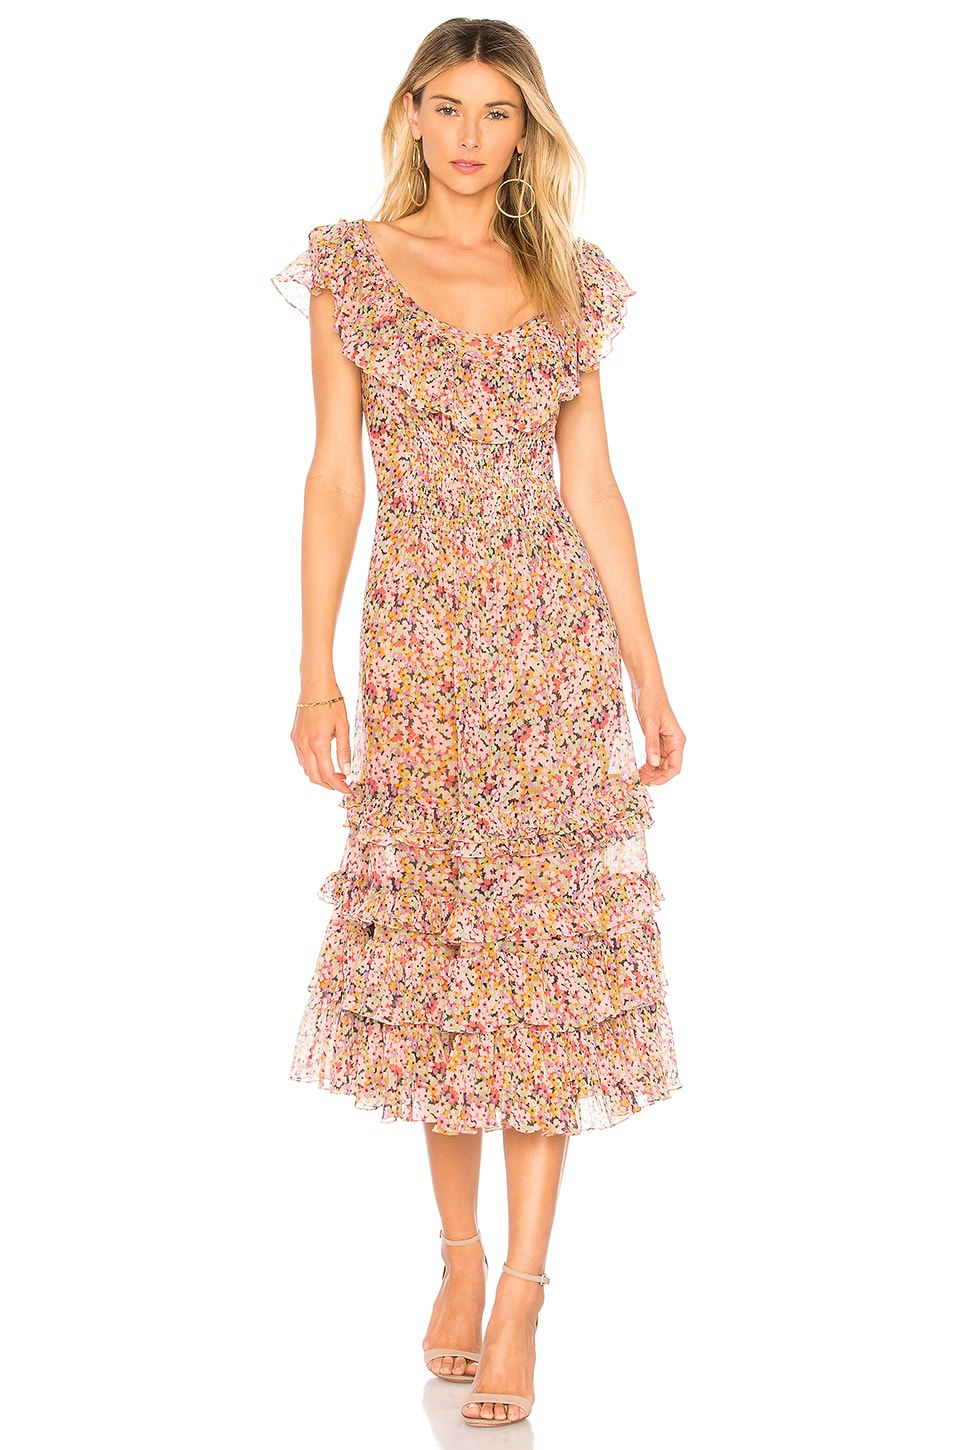 Rebecca Taylor Margo Ruffle Dress in Multi Combo